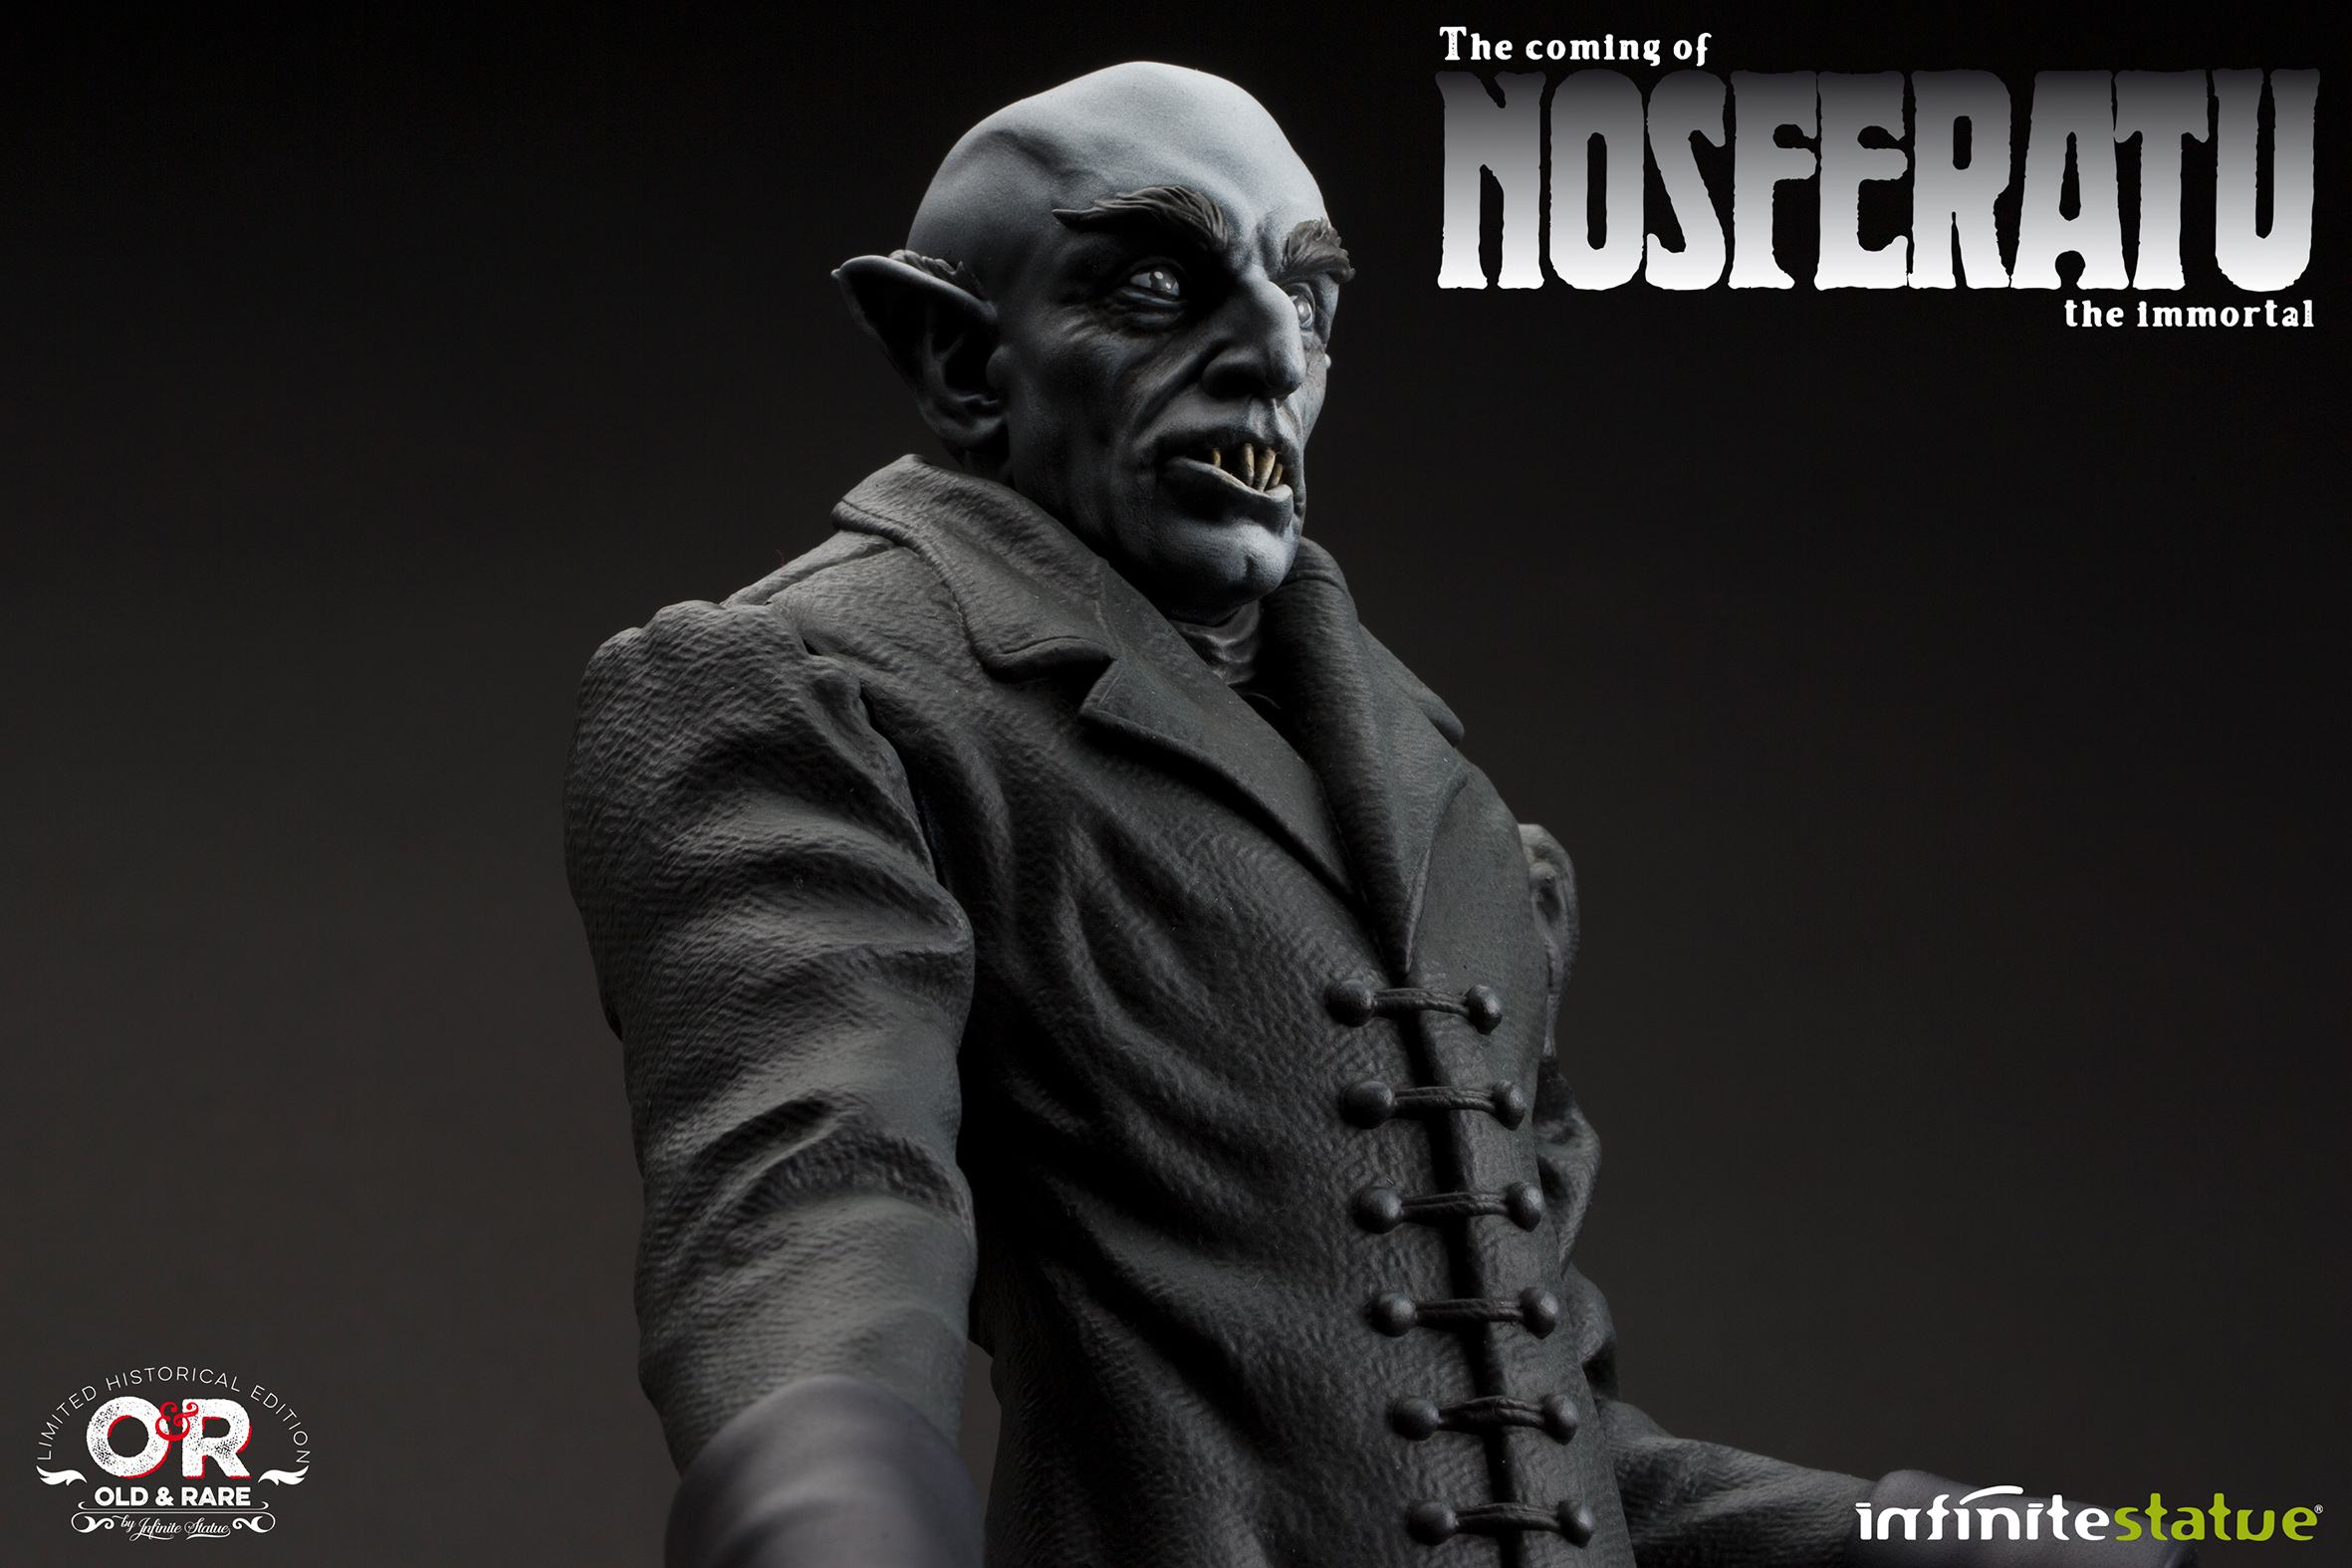 estatua-the-coming-of-nosferatu-statue-03